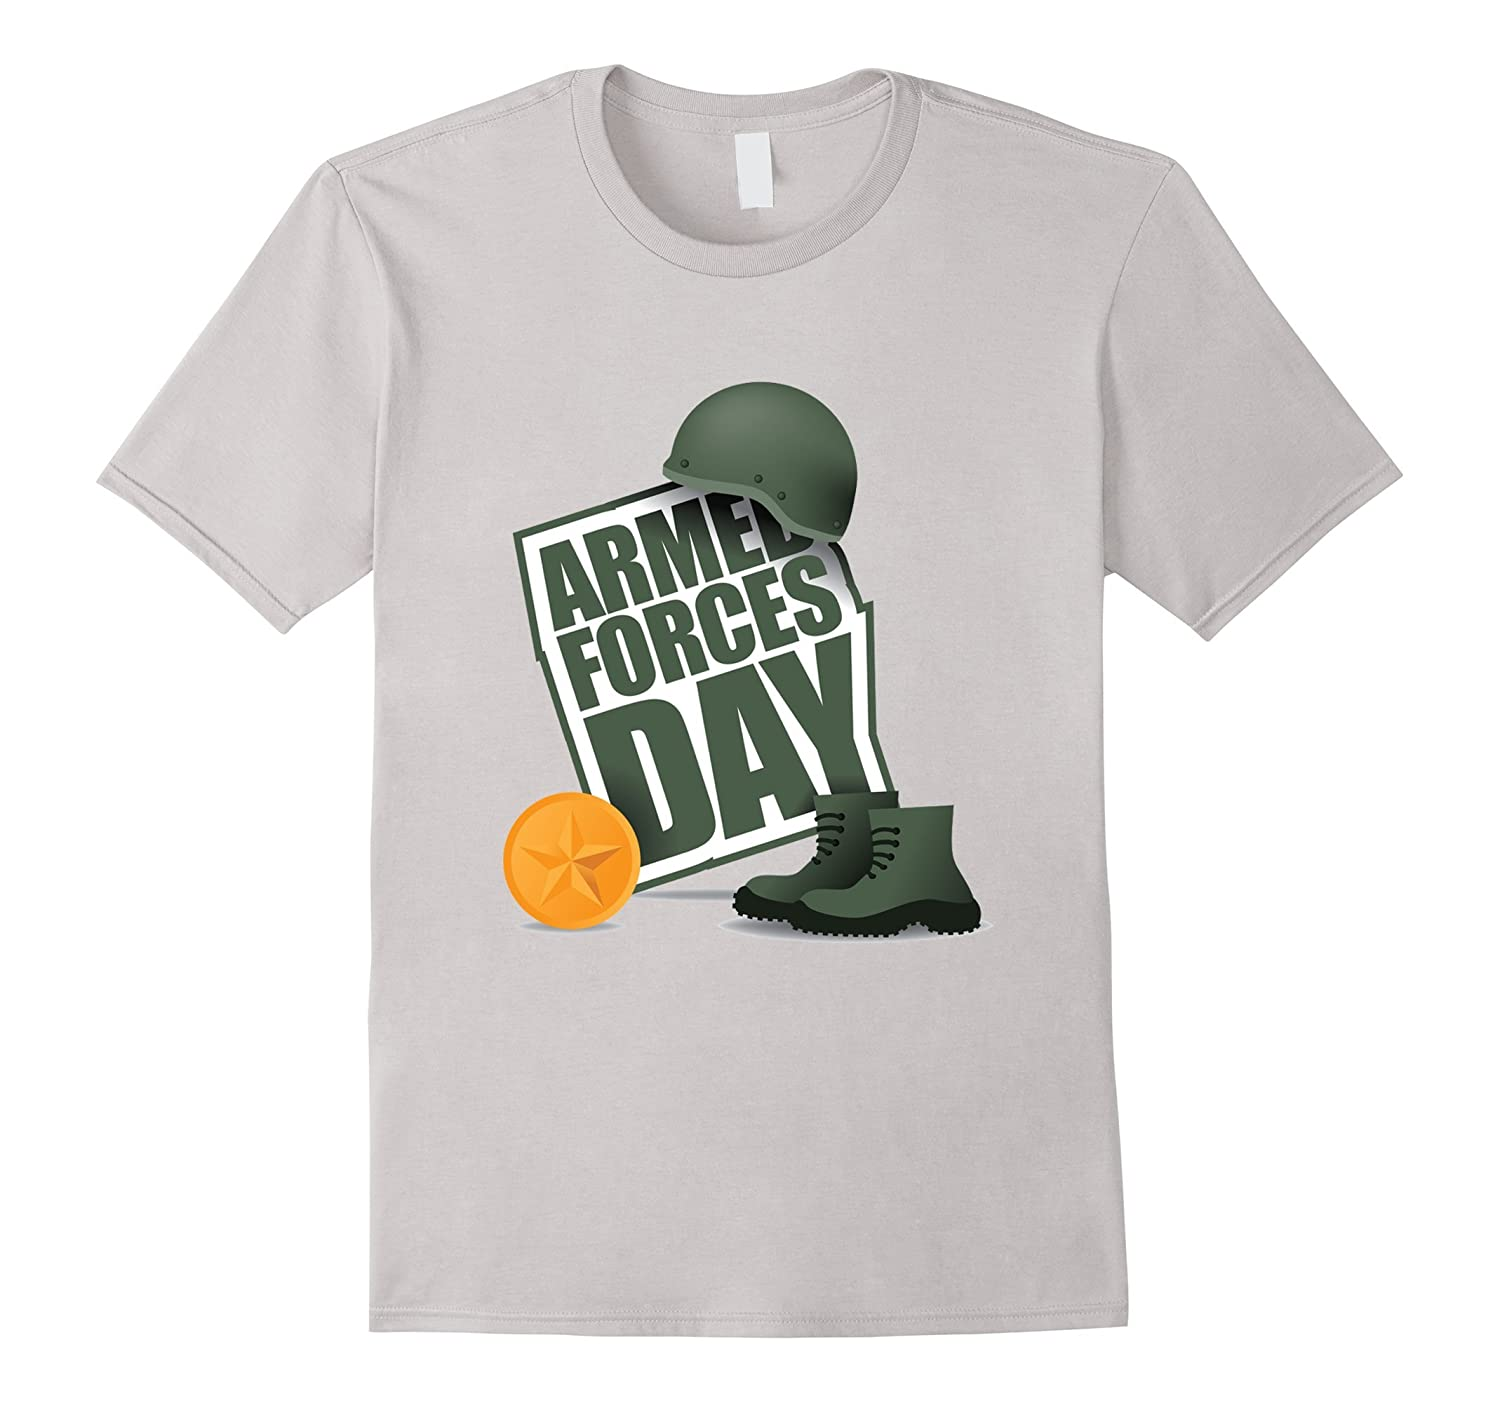 Armed Forces Day T-Shirt